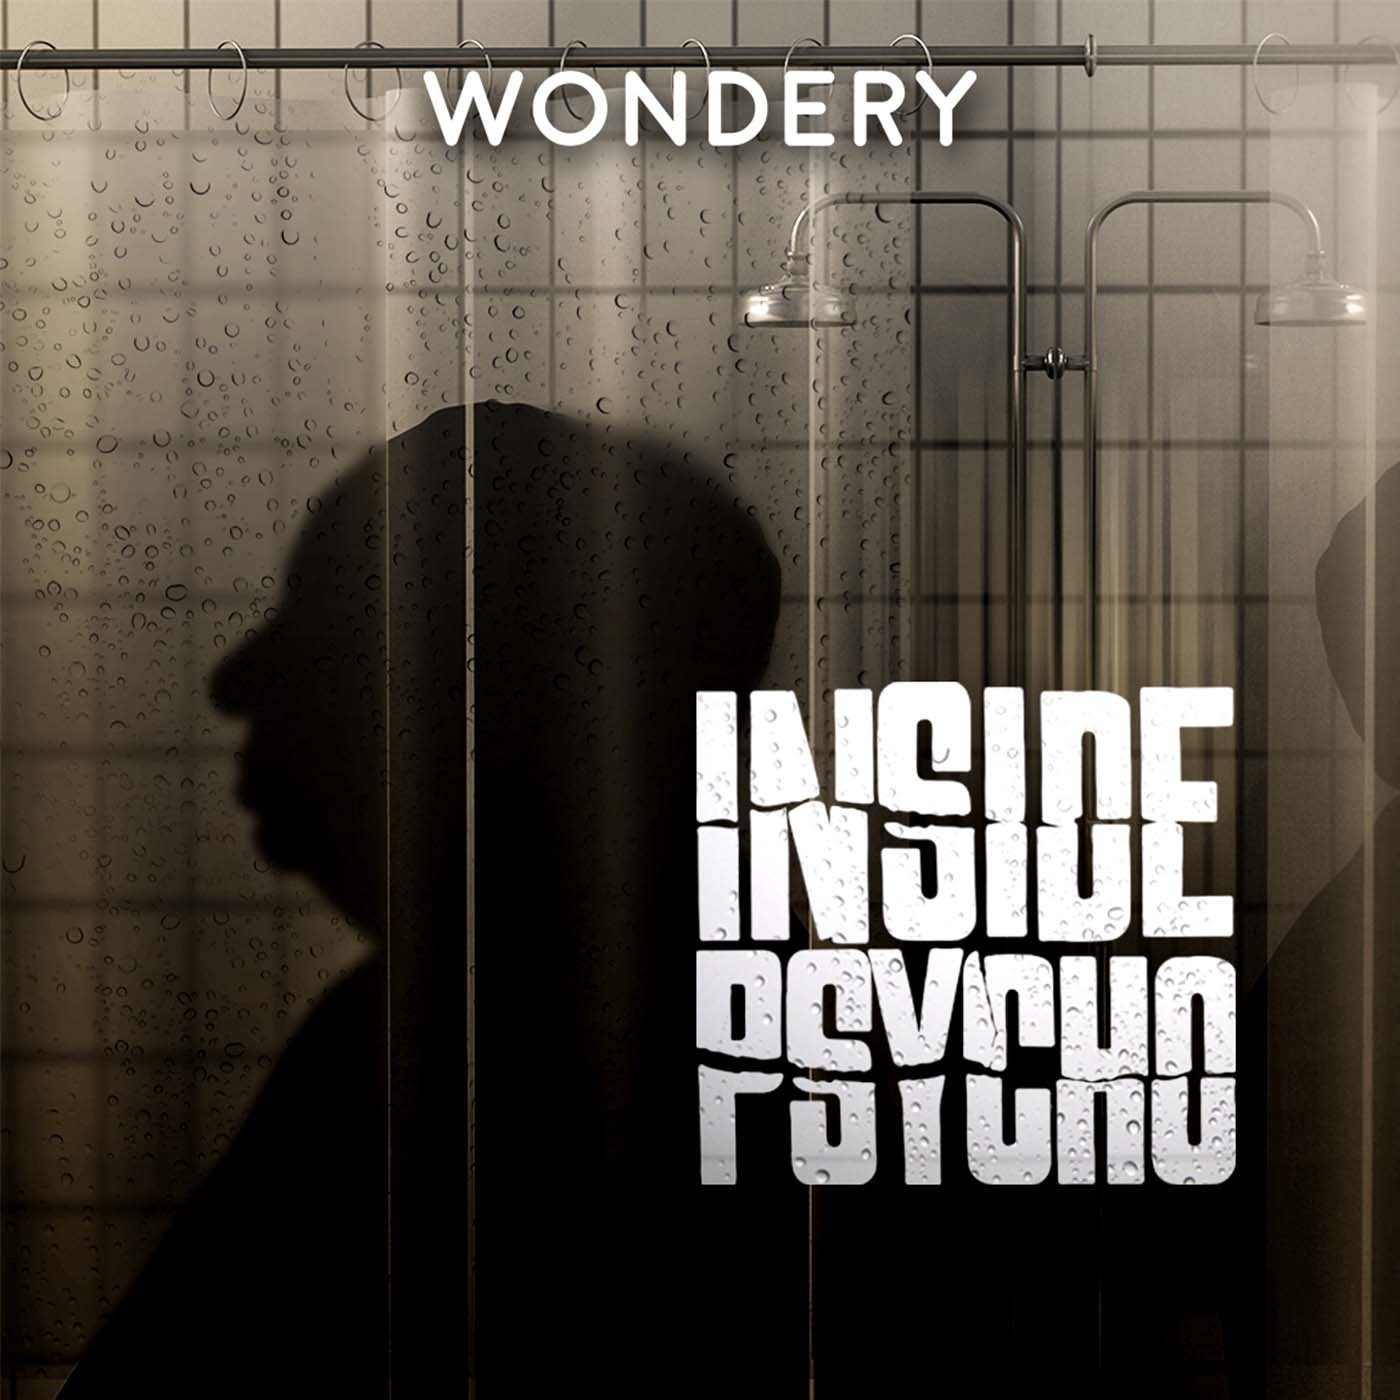 Introducing Inside Psycho